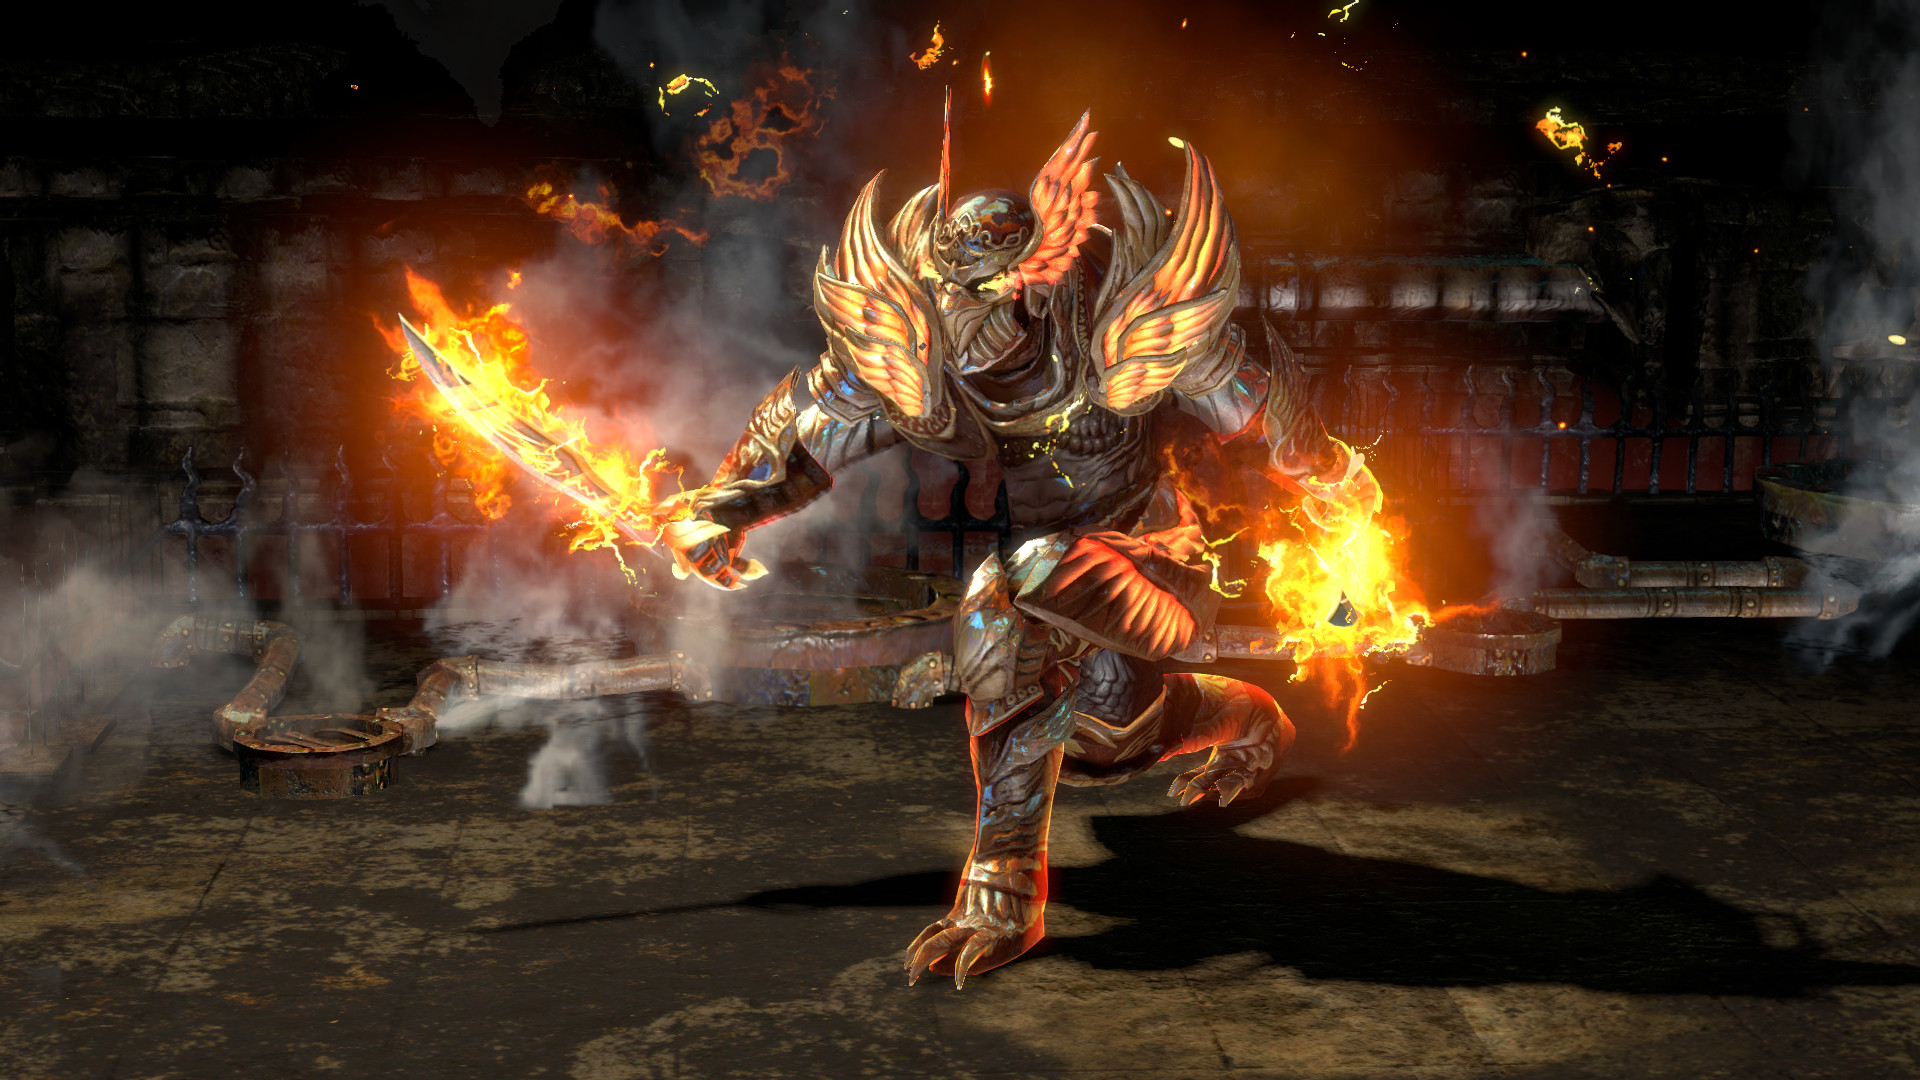 """Path of Exile's next expansion is due in September and tweaks """"older master content"""""""